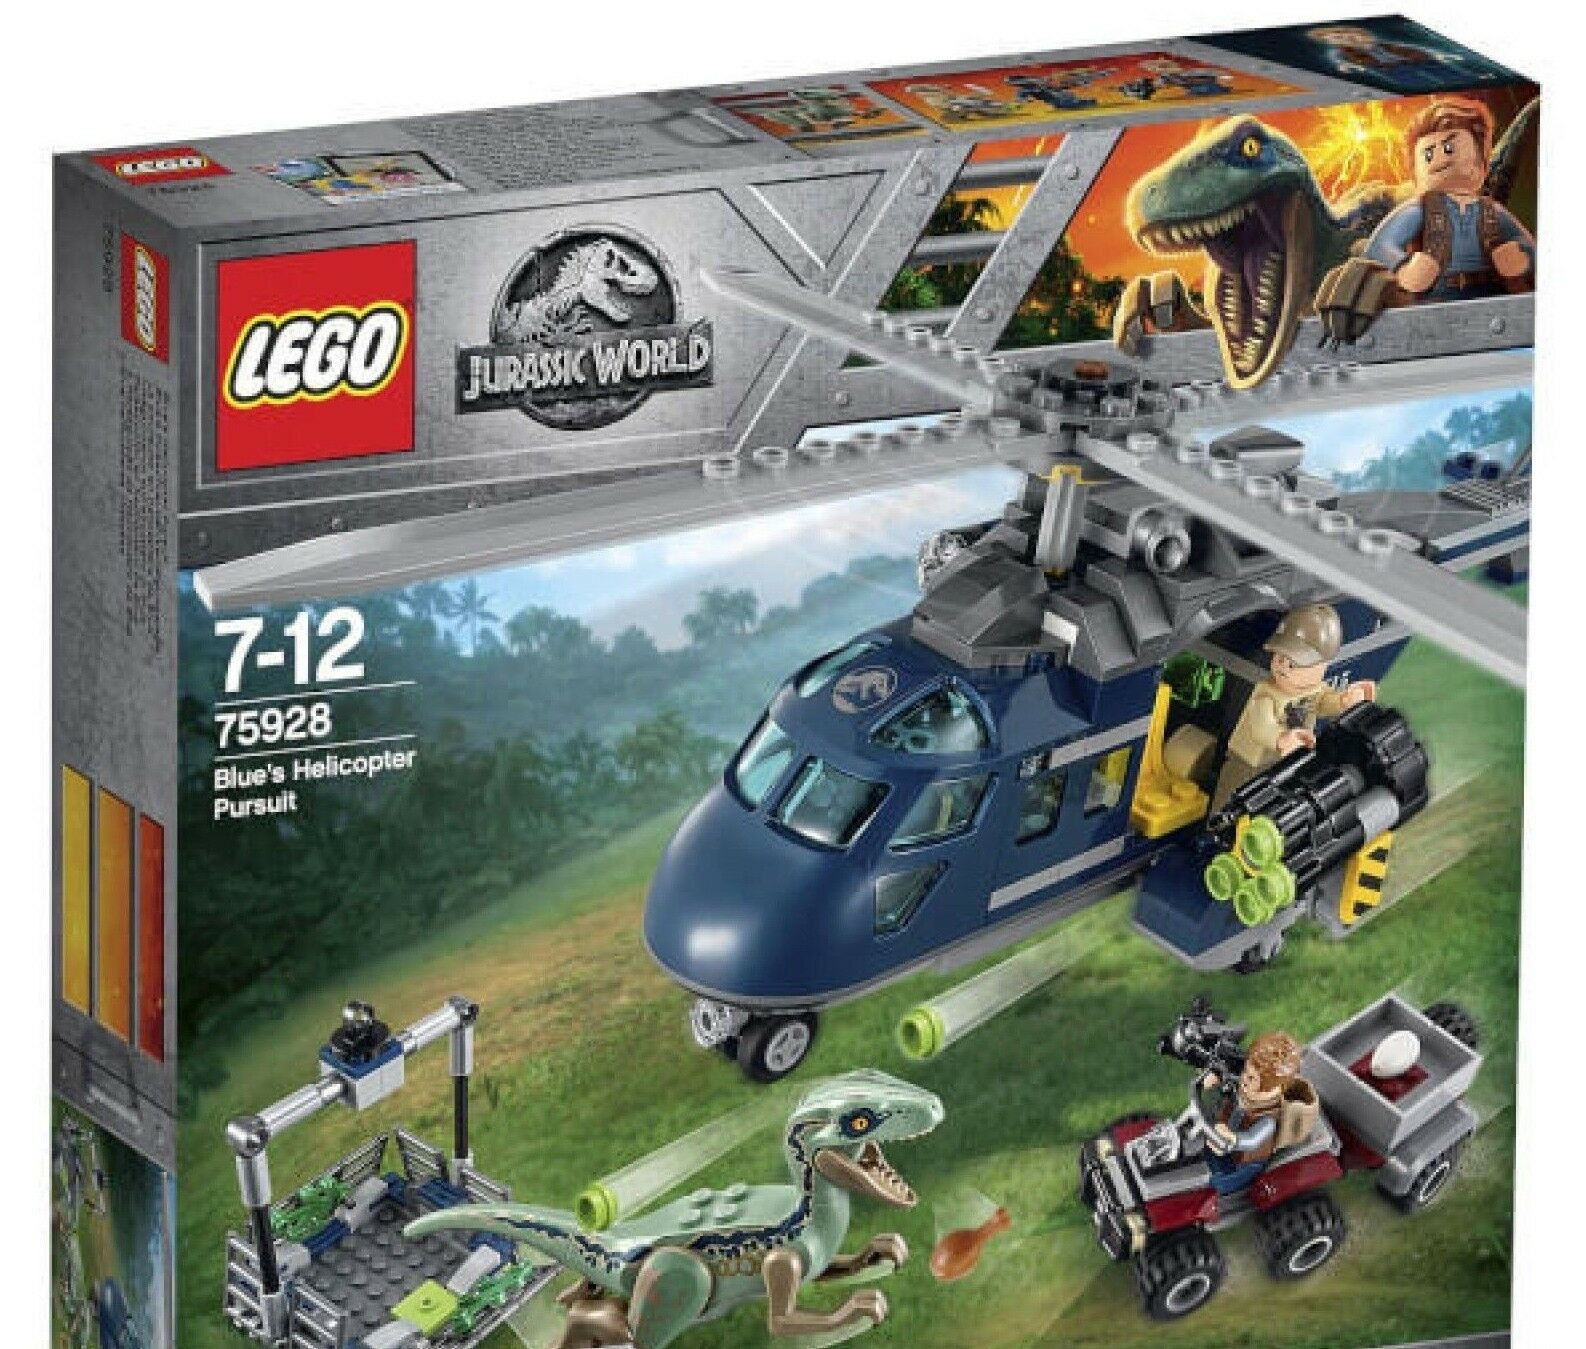 LEGO 75928 Jurassic World bluee\'s Helicopter Pursuit Brand New